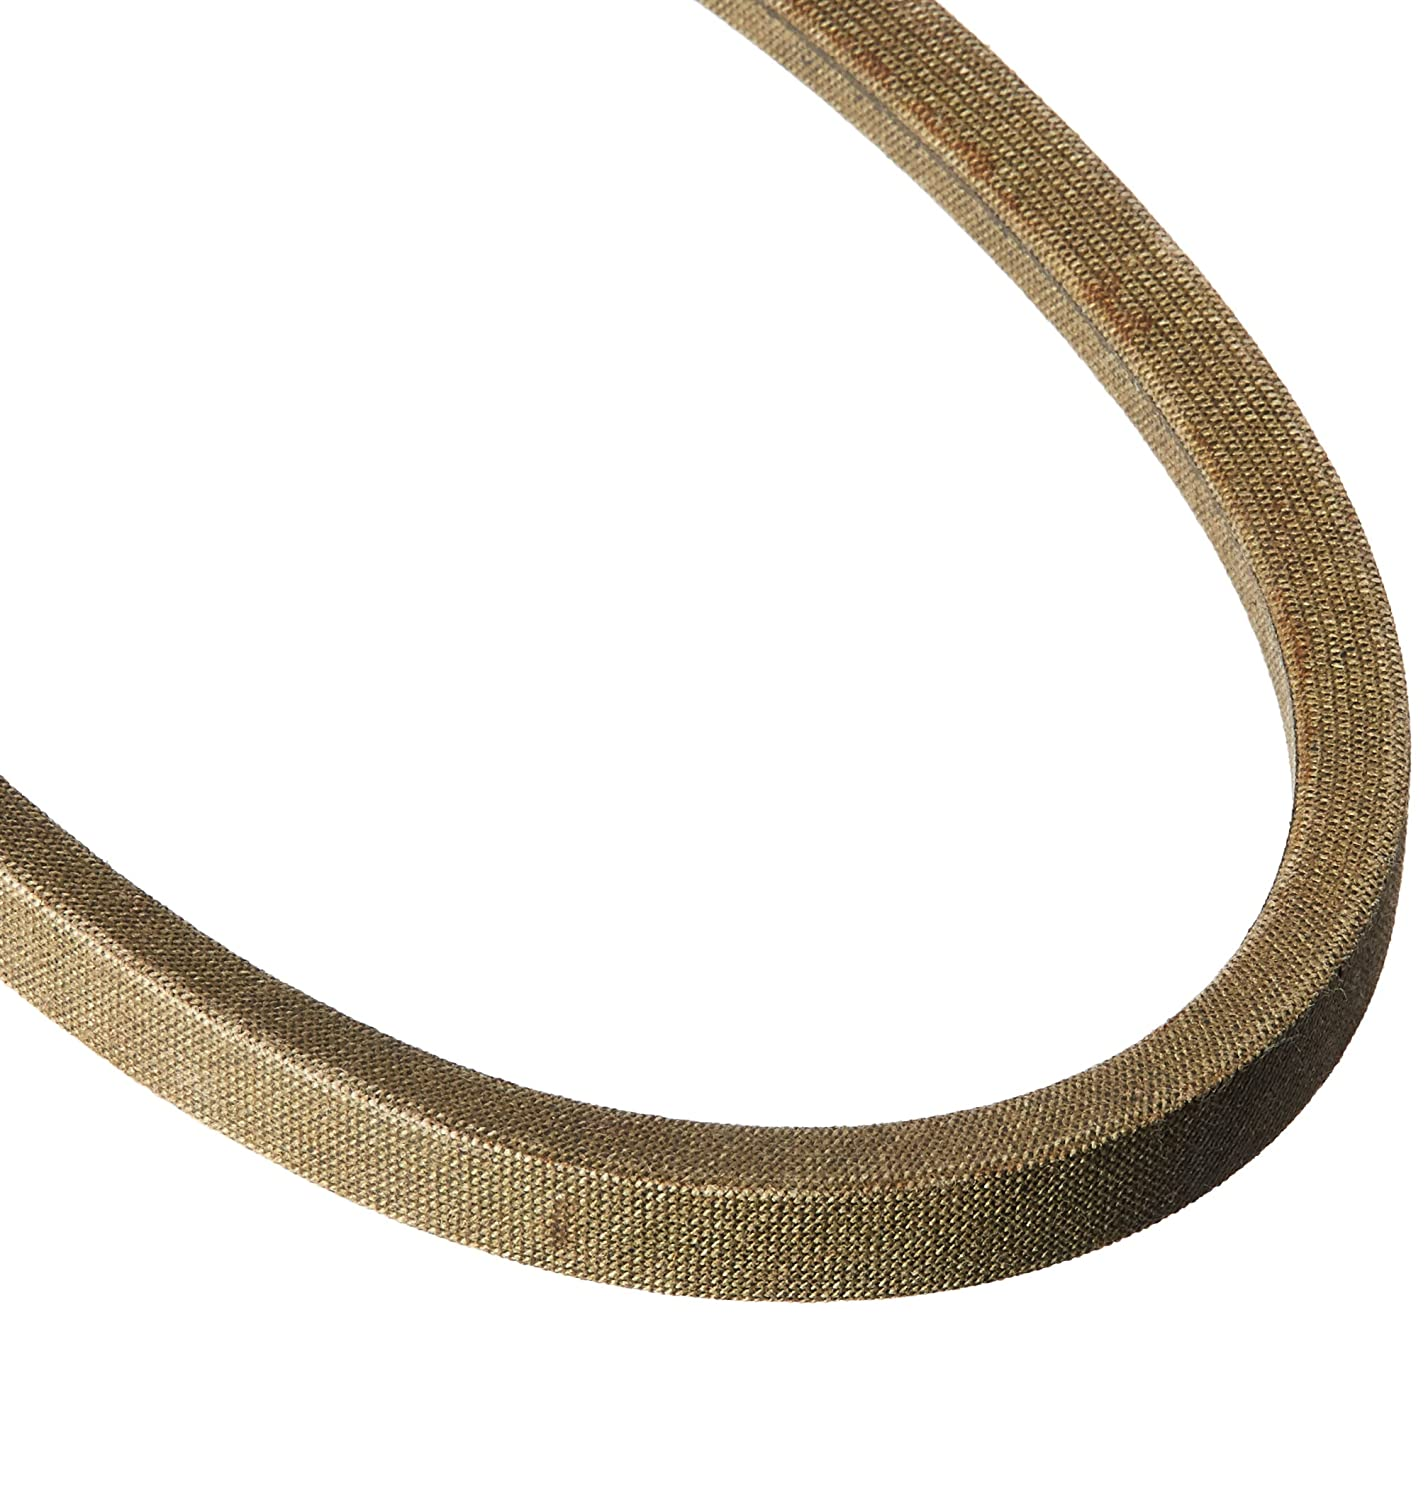 71460107 part# 265-752 Stens OEM Replacement Belt Wright Mfg